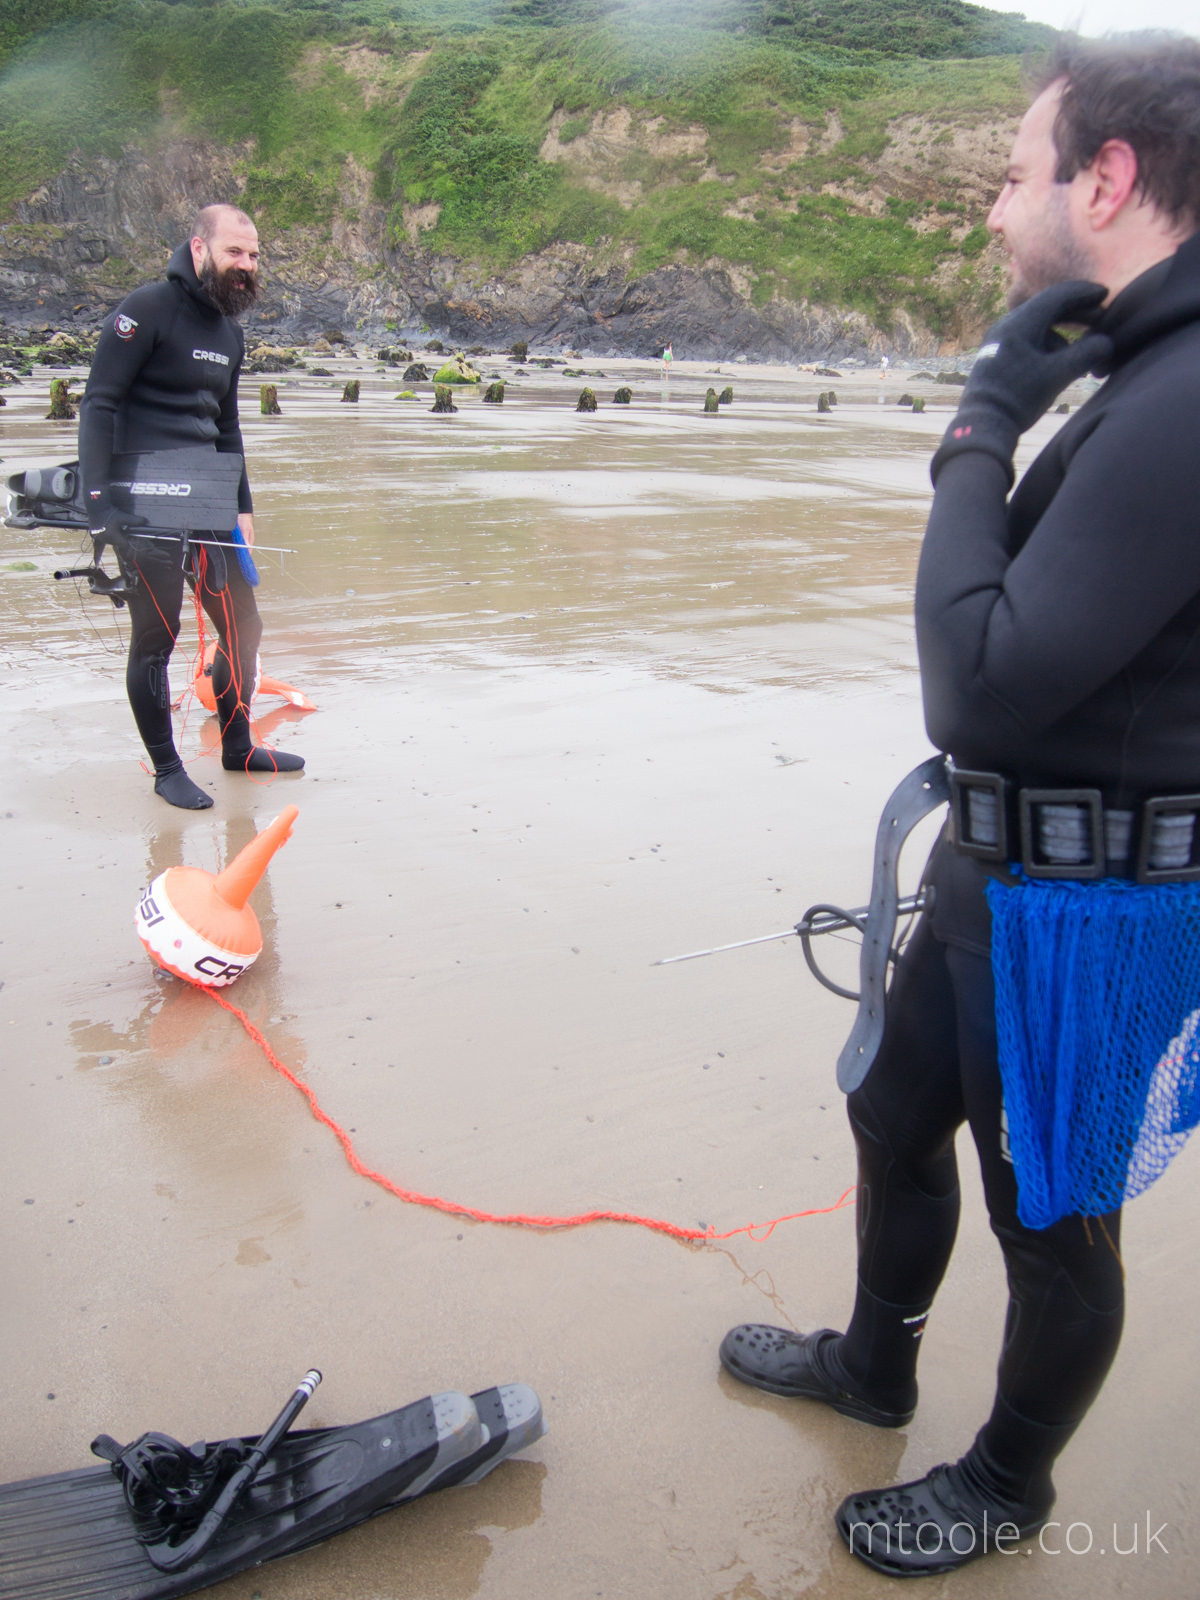 Happy Spearos on the Spearfishing Course in Wales